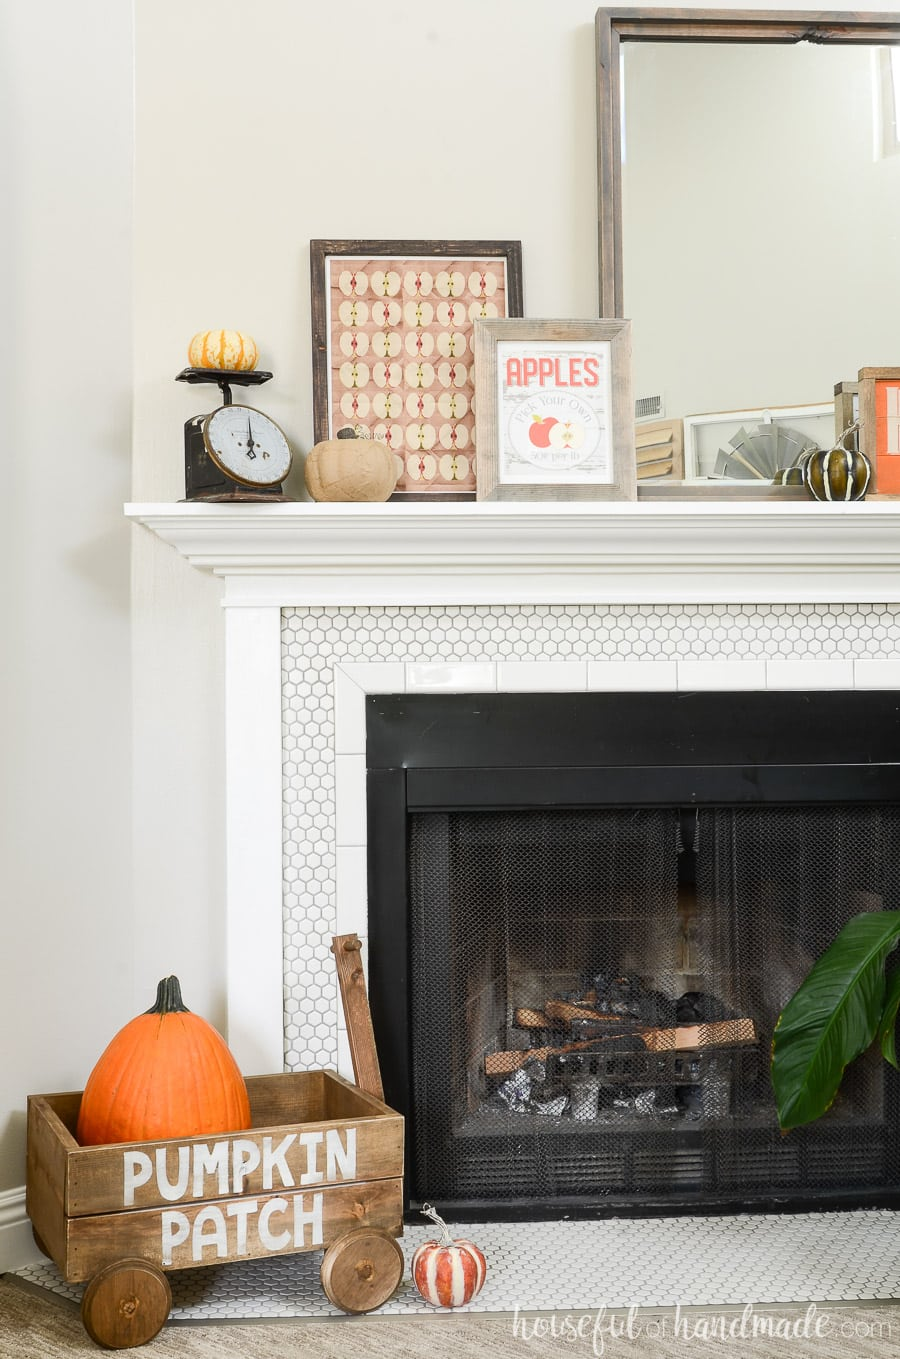 Fireplace mantel decorated with all your favorite fall traditions: hayrides, apple picking and the pumpkin patch. Beautiful DIY fall decor.